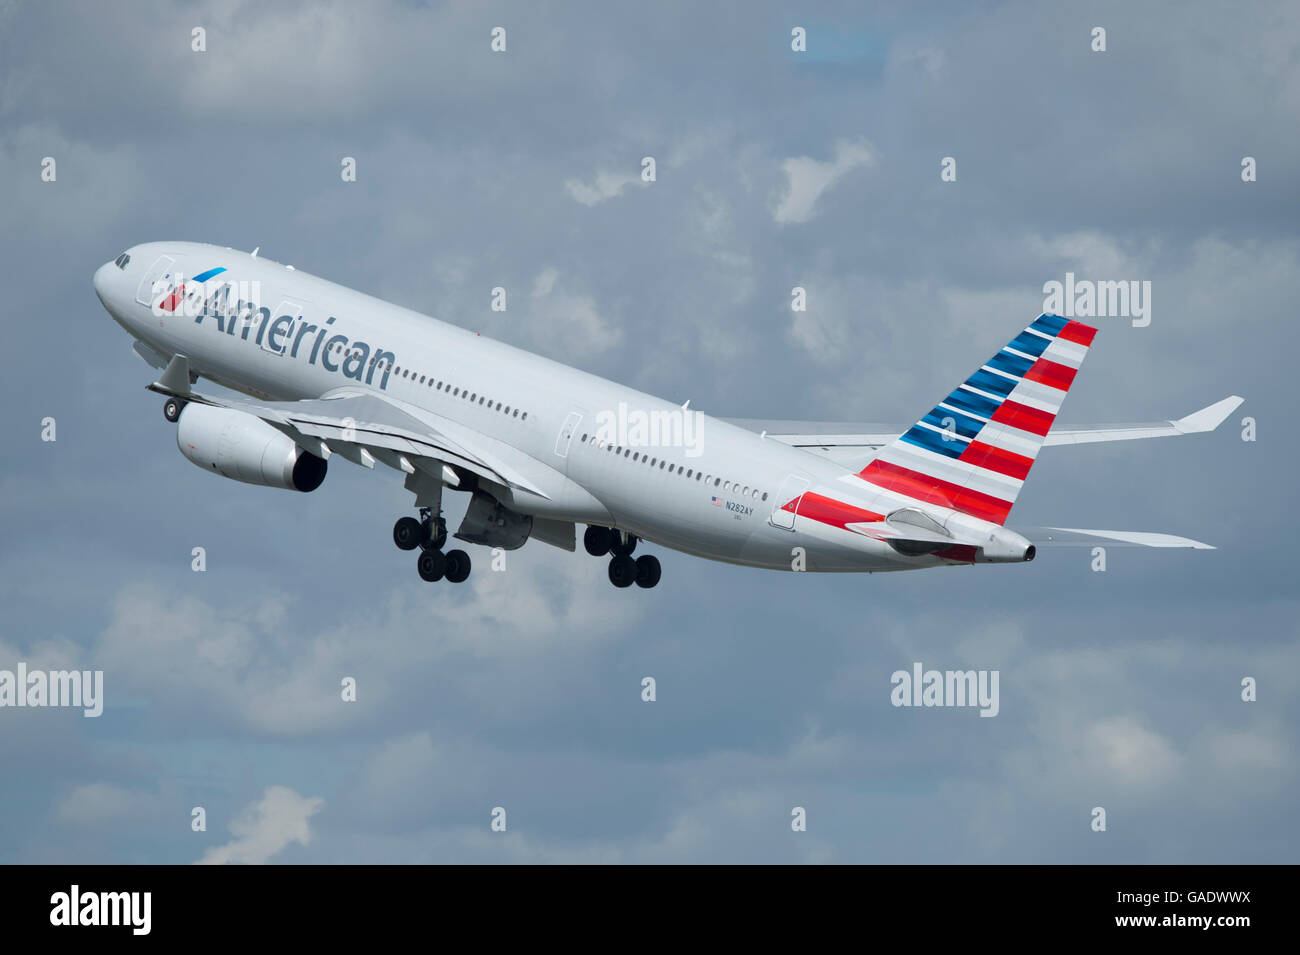 An American Airlines Airbus A330 takes off from Manchester International Airport (Editorial use only) - Stock Image